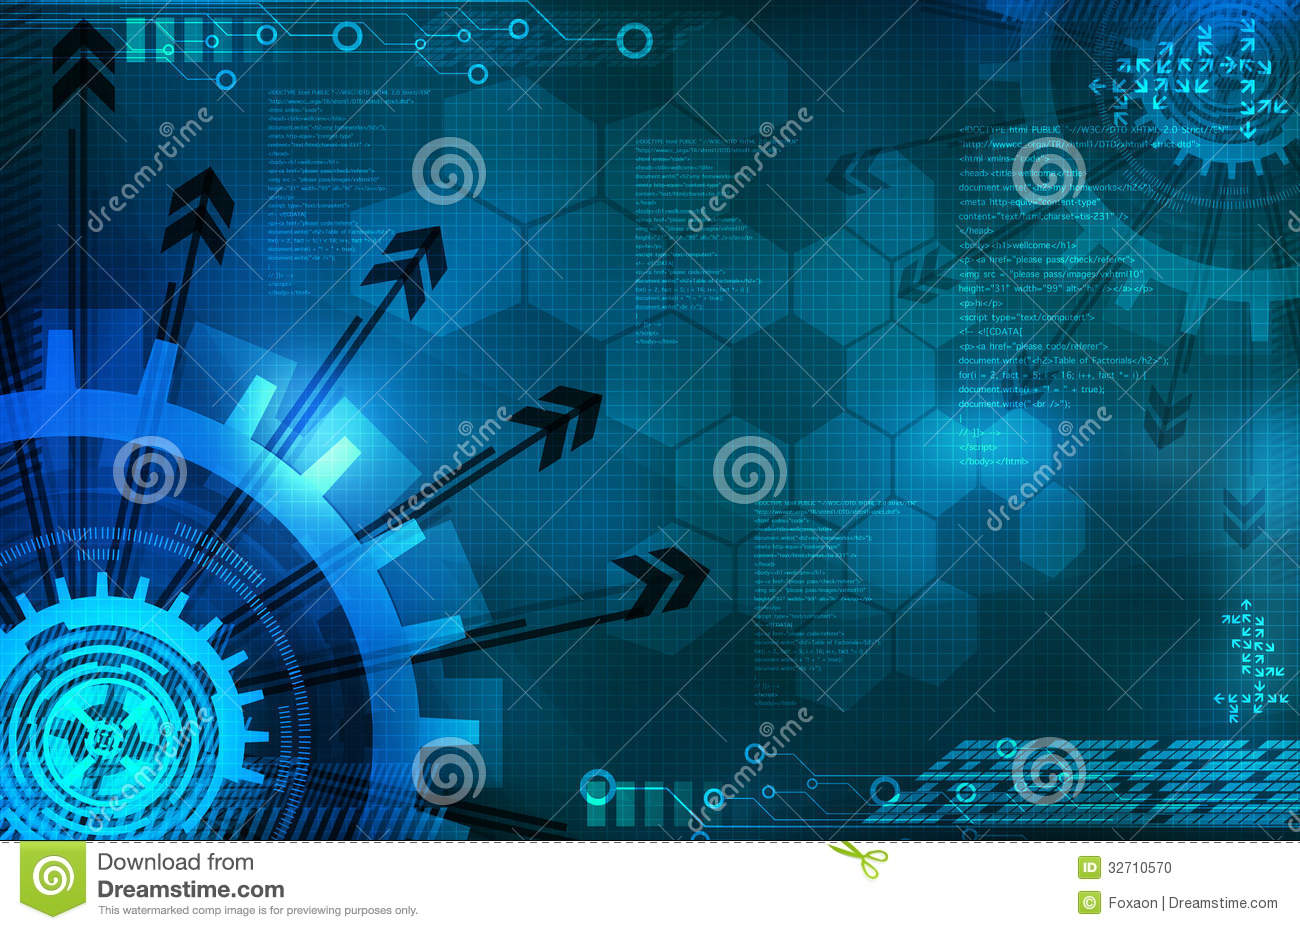 Blue Technology Abstract Background: Abstract Blue Background Technology Stock Illustration